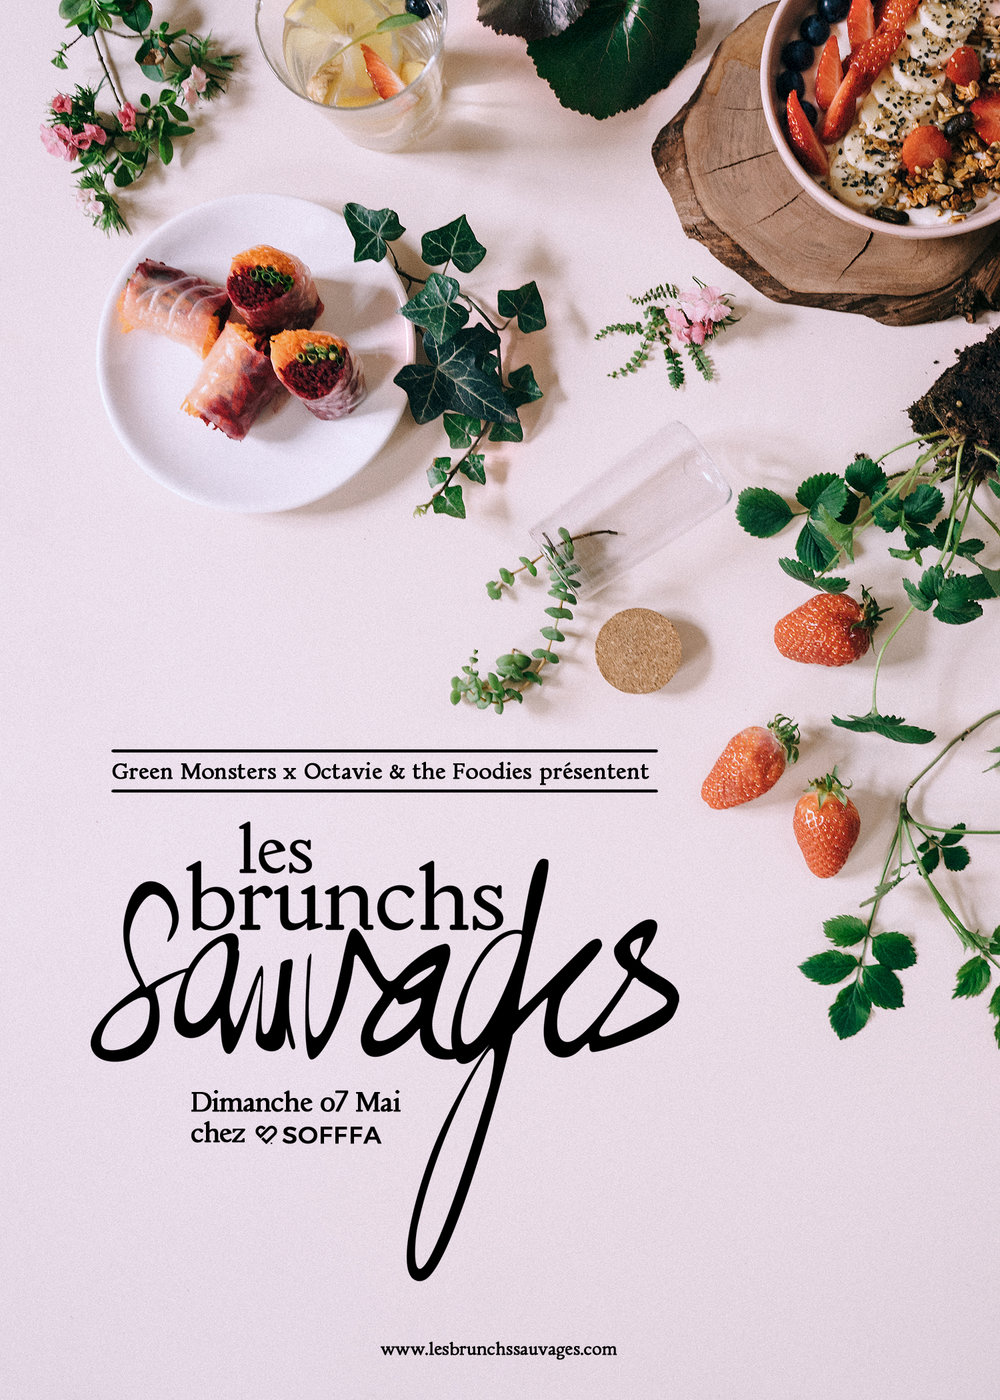 Brunchs-Sauvages-edition1.jpg